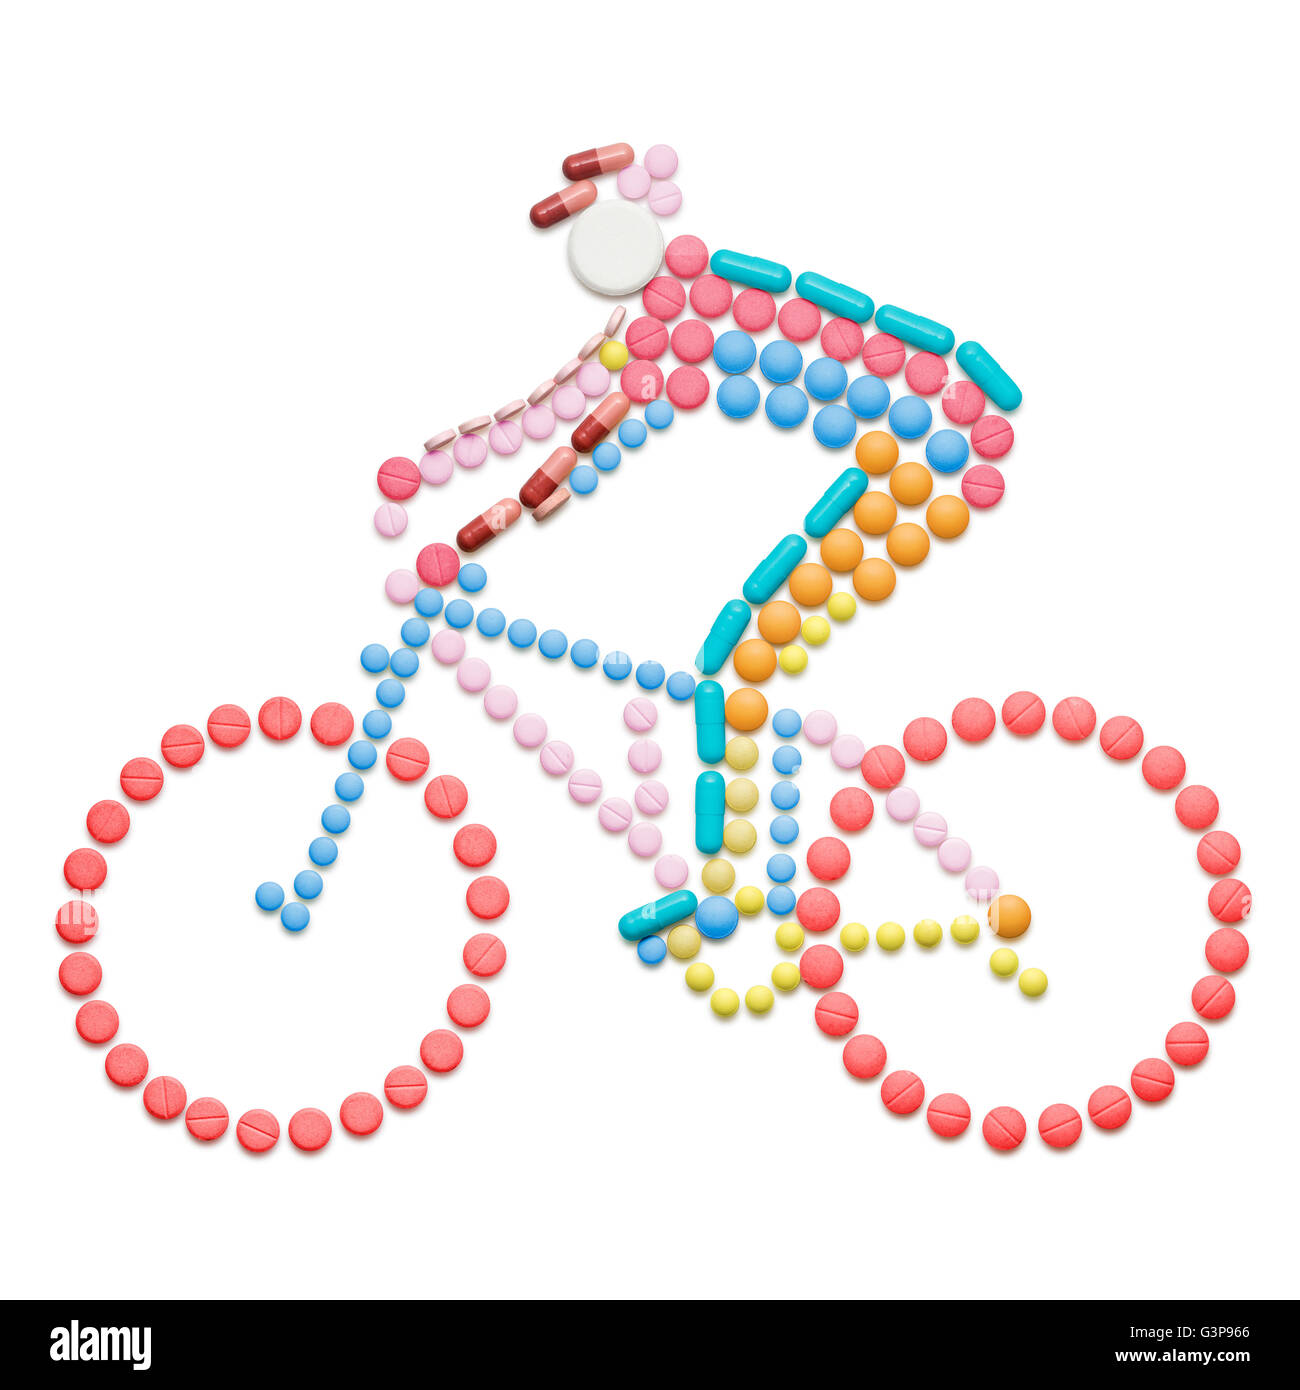 Doping drugs and pills in the shape of a road bicycle racer on a bike. - Stock Image